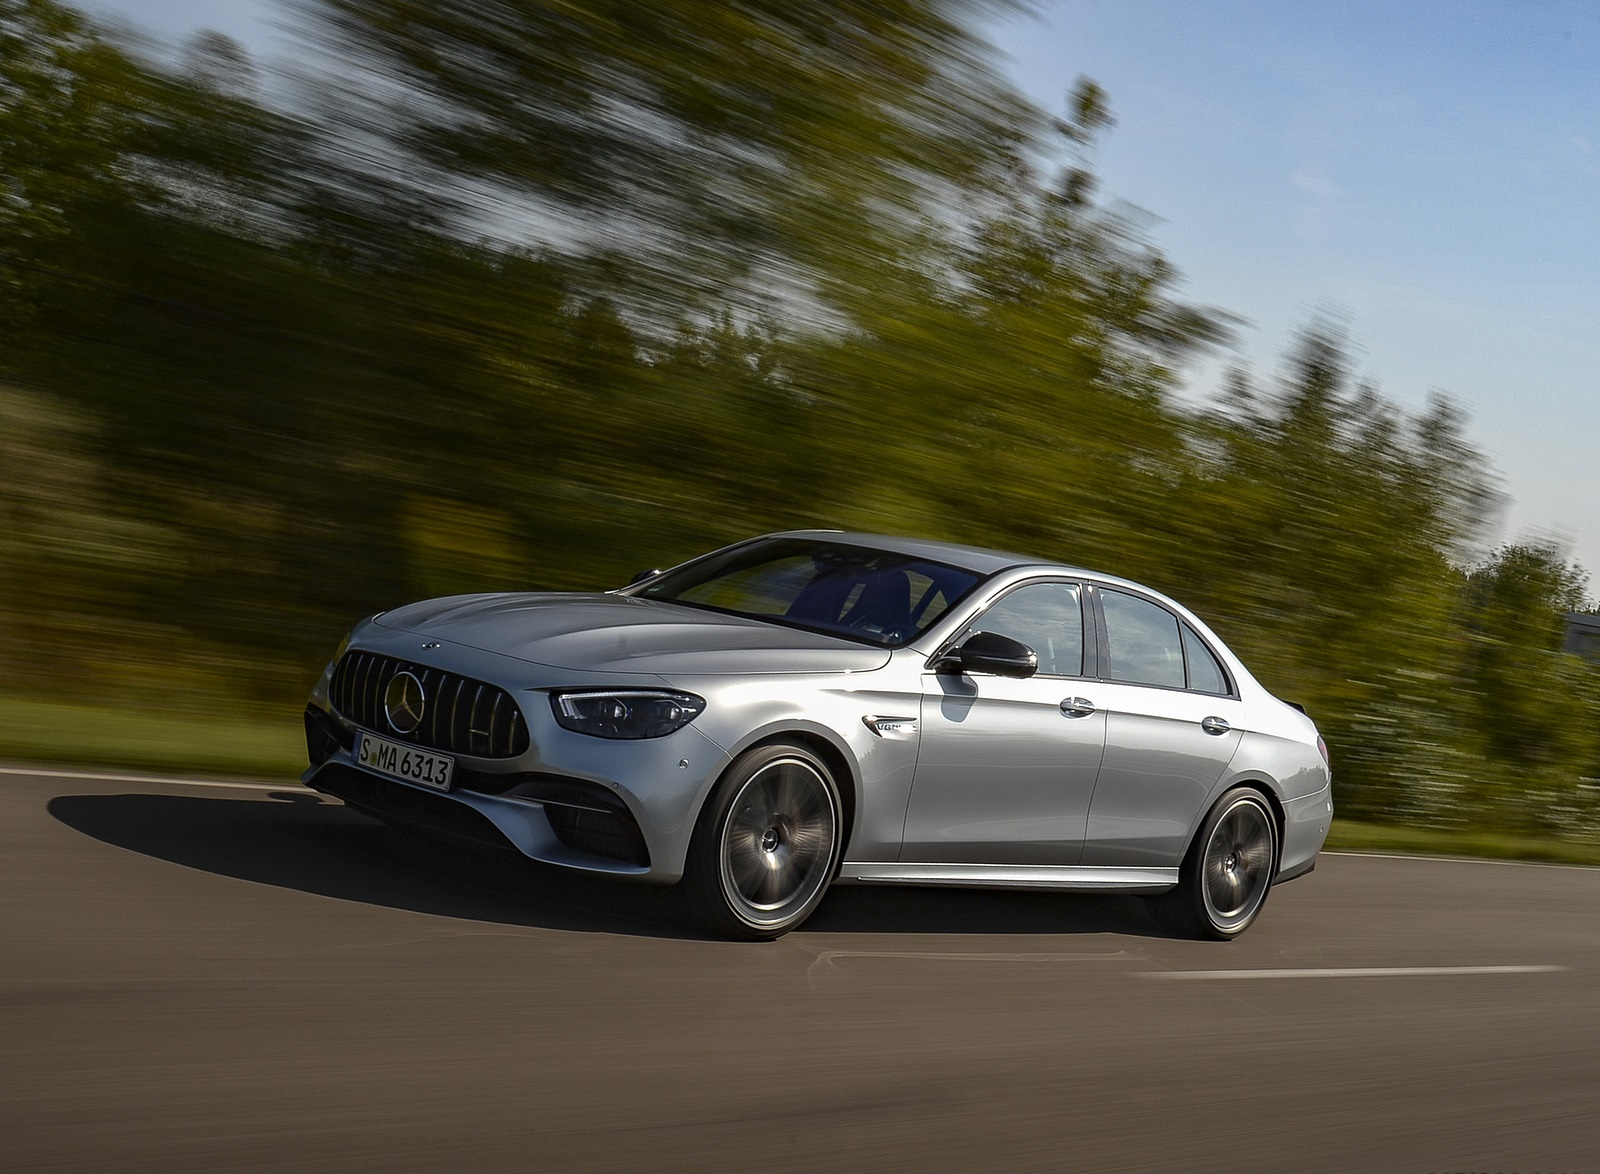 2021 Mercedes-AMG E 63 S 4MATIC+ (Color: High-Tech Silver Metallic) Front Three-Quarter Wallpapers (5)